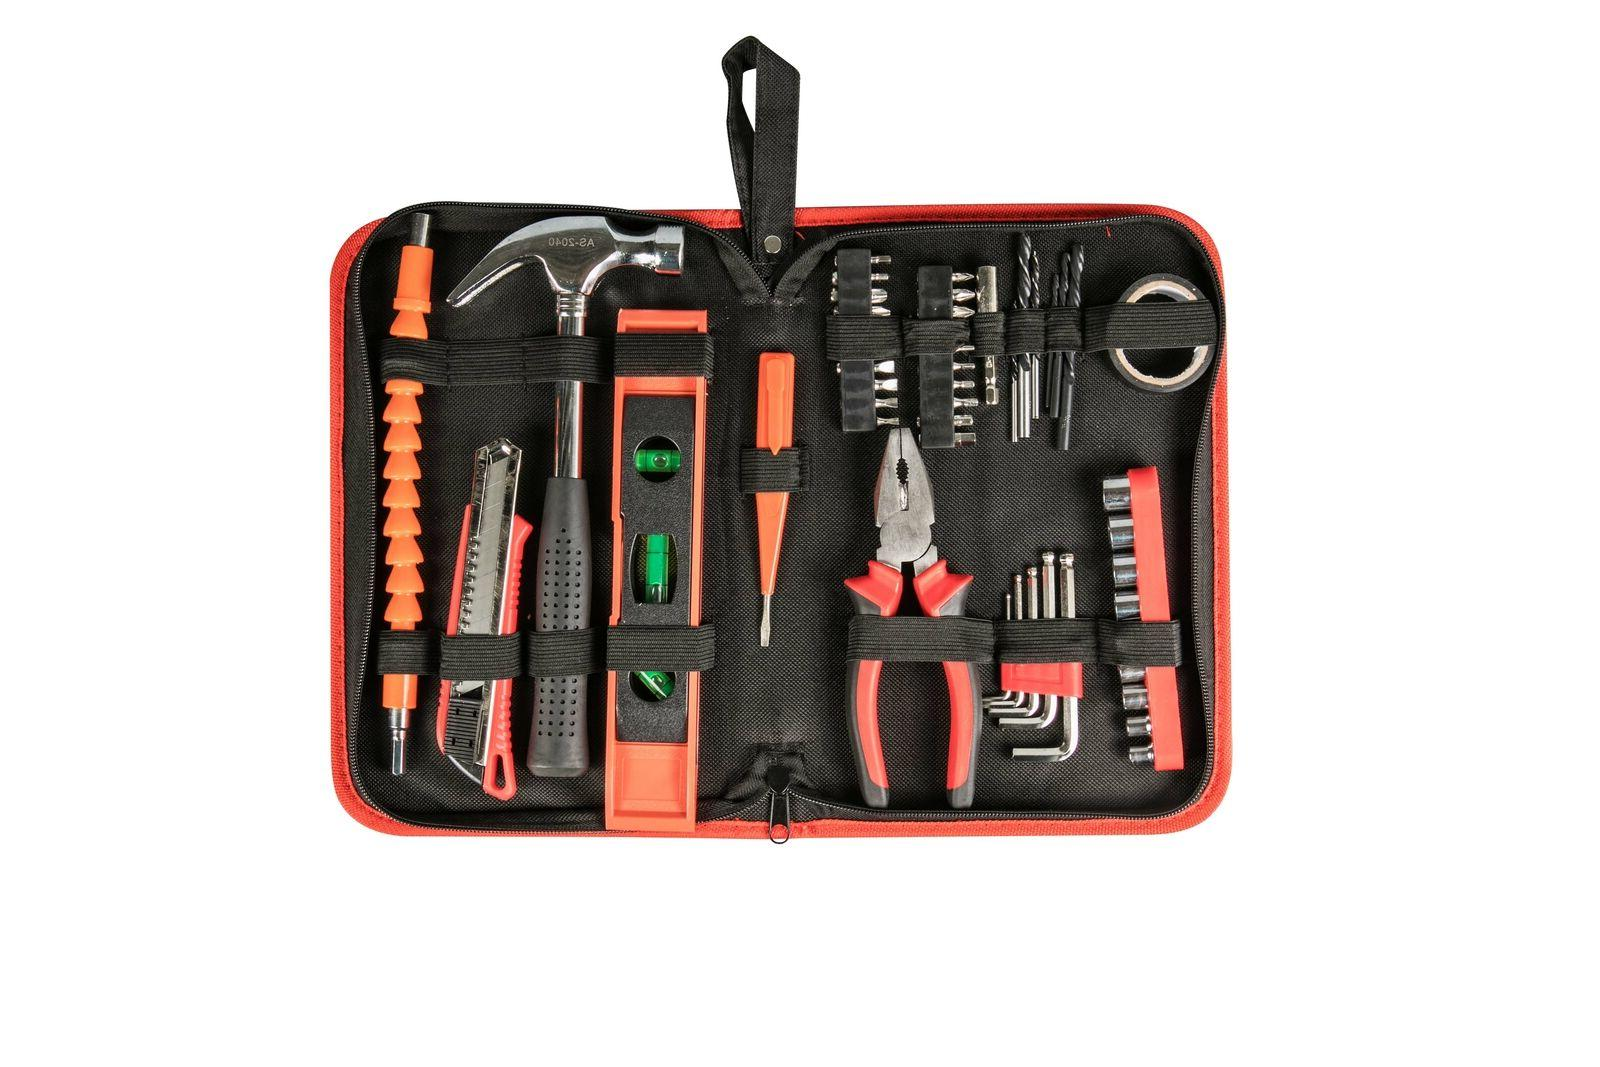 12V Cordless Drill, 1-Speed 21+1 Drill keyless Clutch With 50pcs Hand Tools